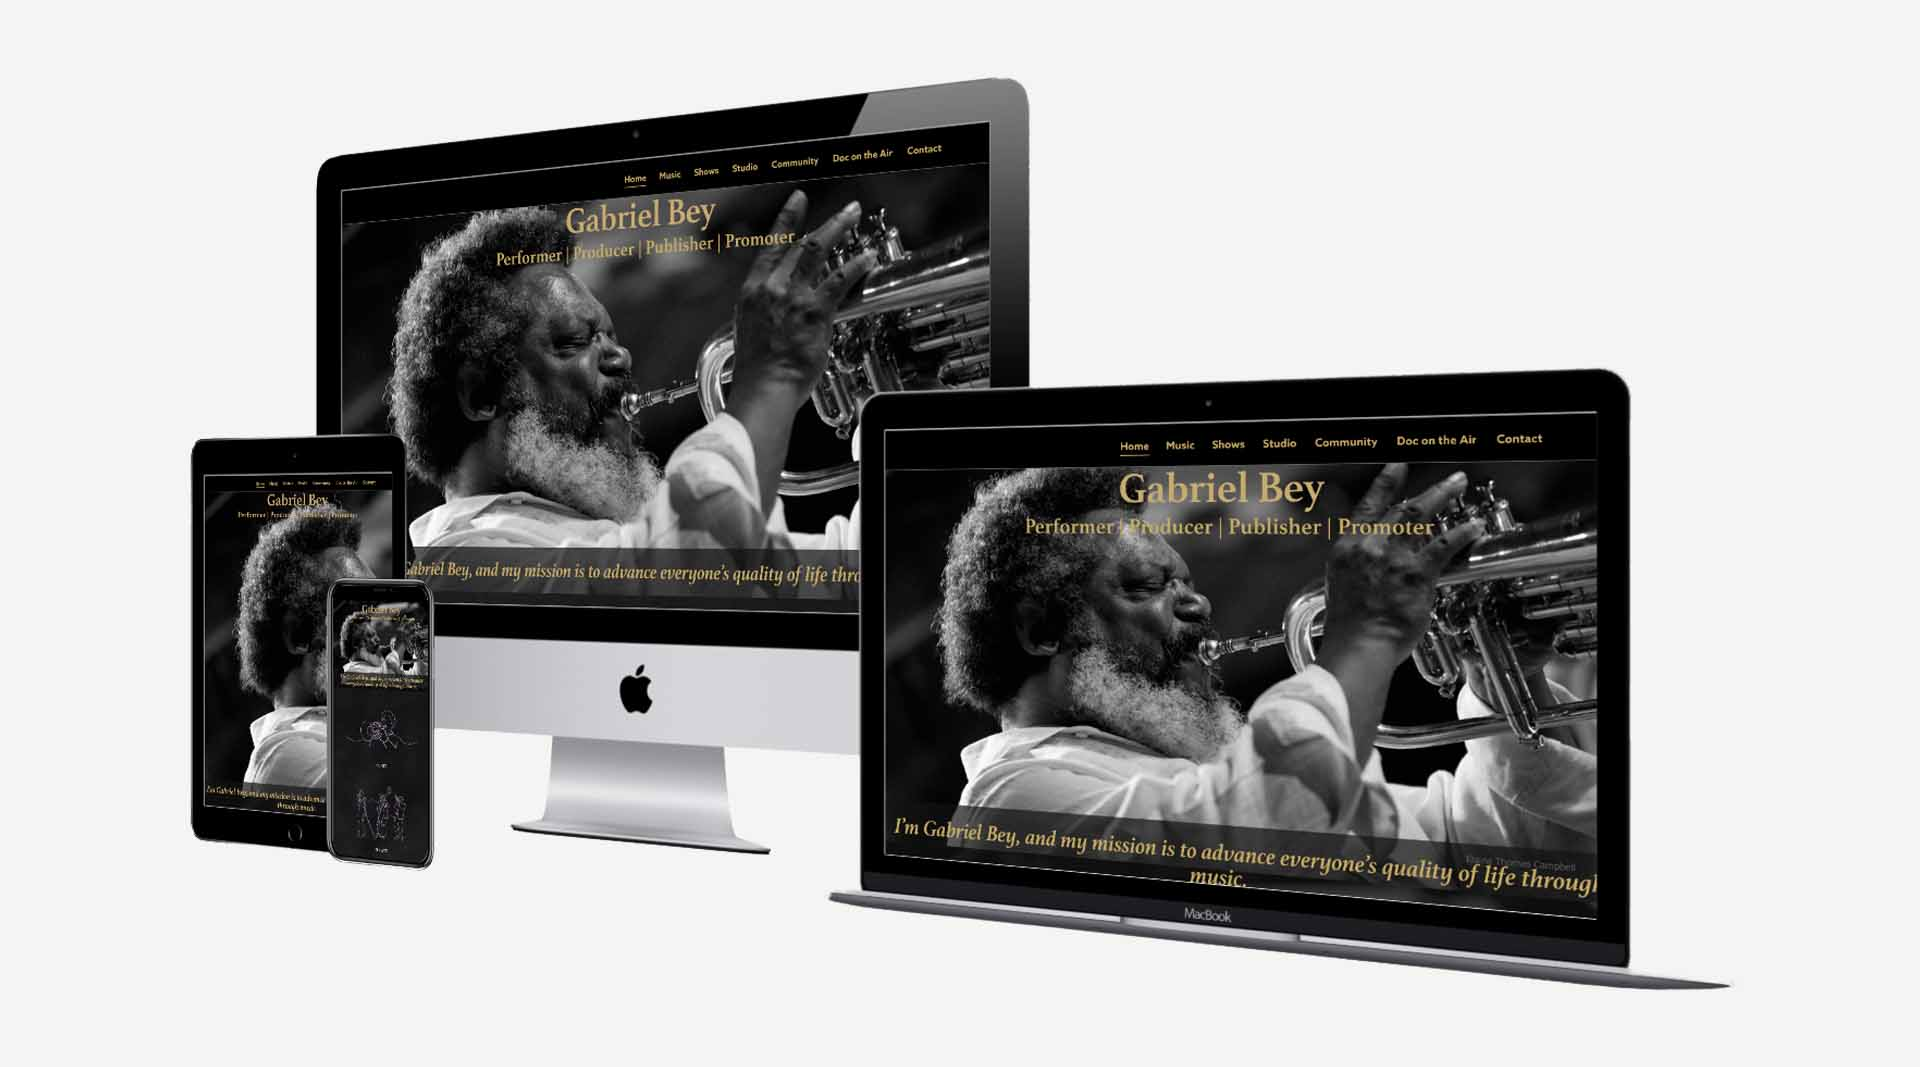 Graphic showing the website designed by Clamshell Communications for Gabriel Bey on four device screens